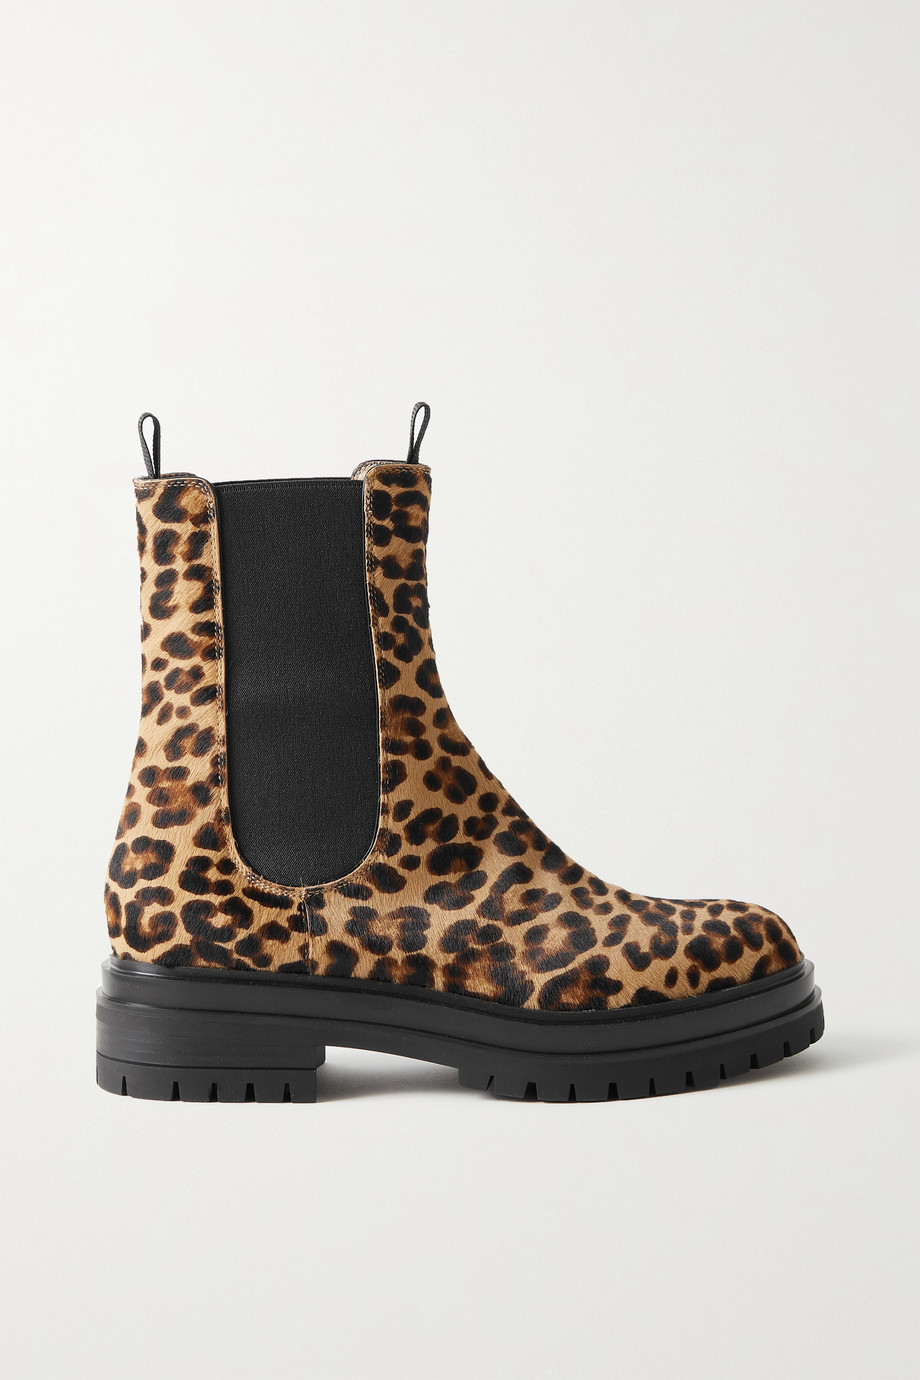 Gianvito Rossi Chester leopard-print calf hair Chelsea boots